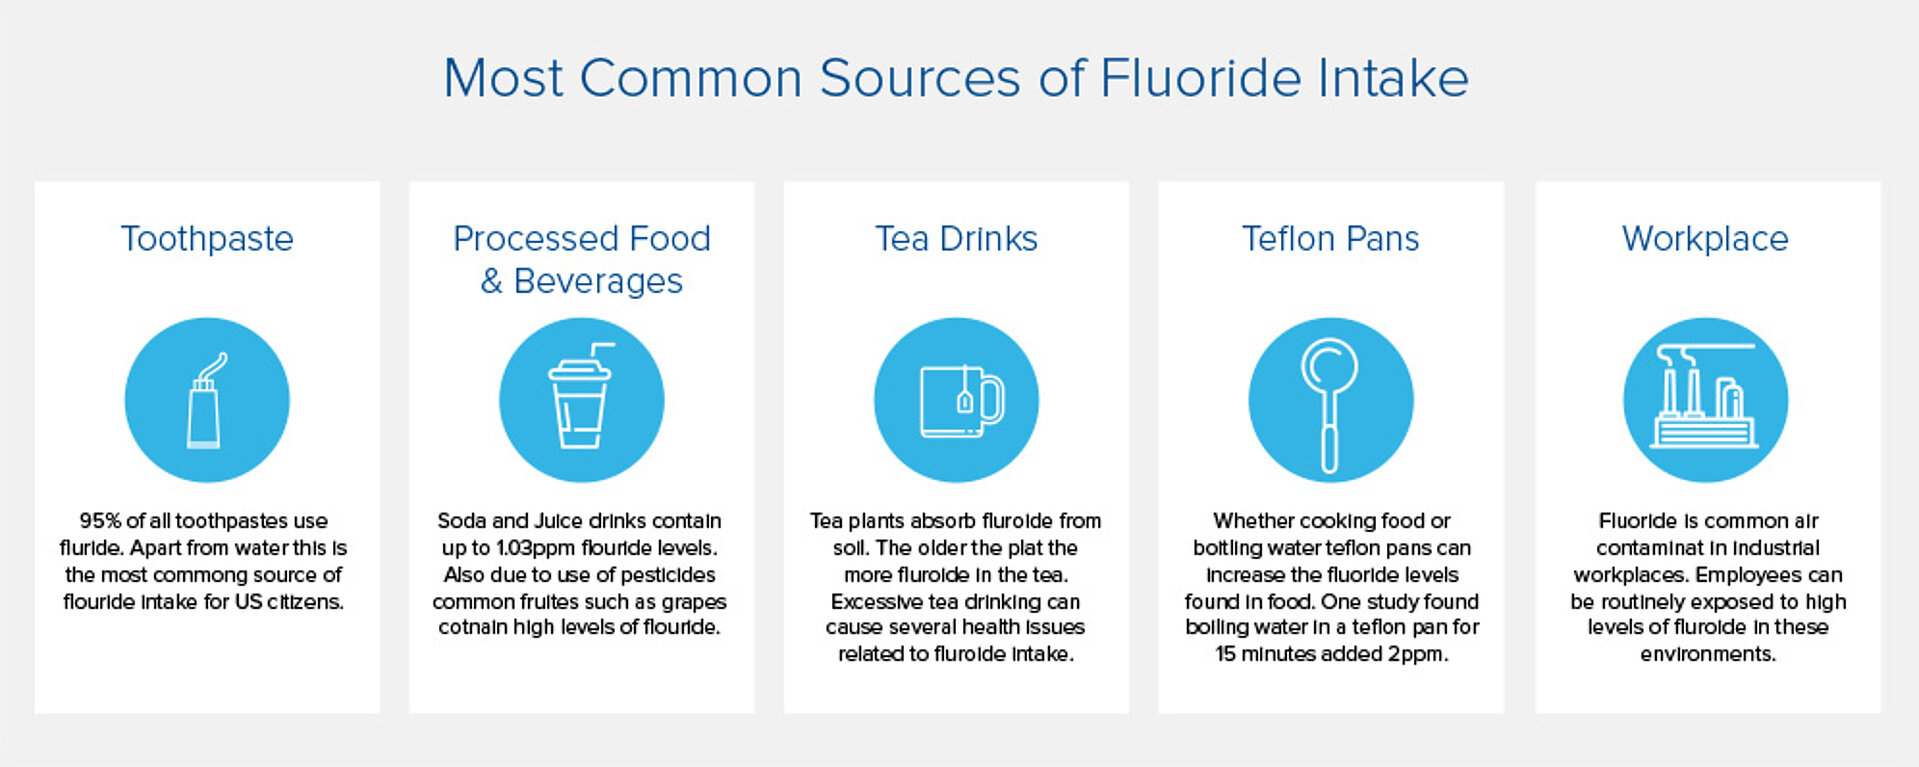 Most common sources of fluoride intake